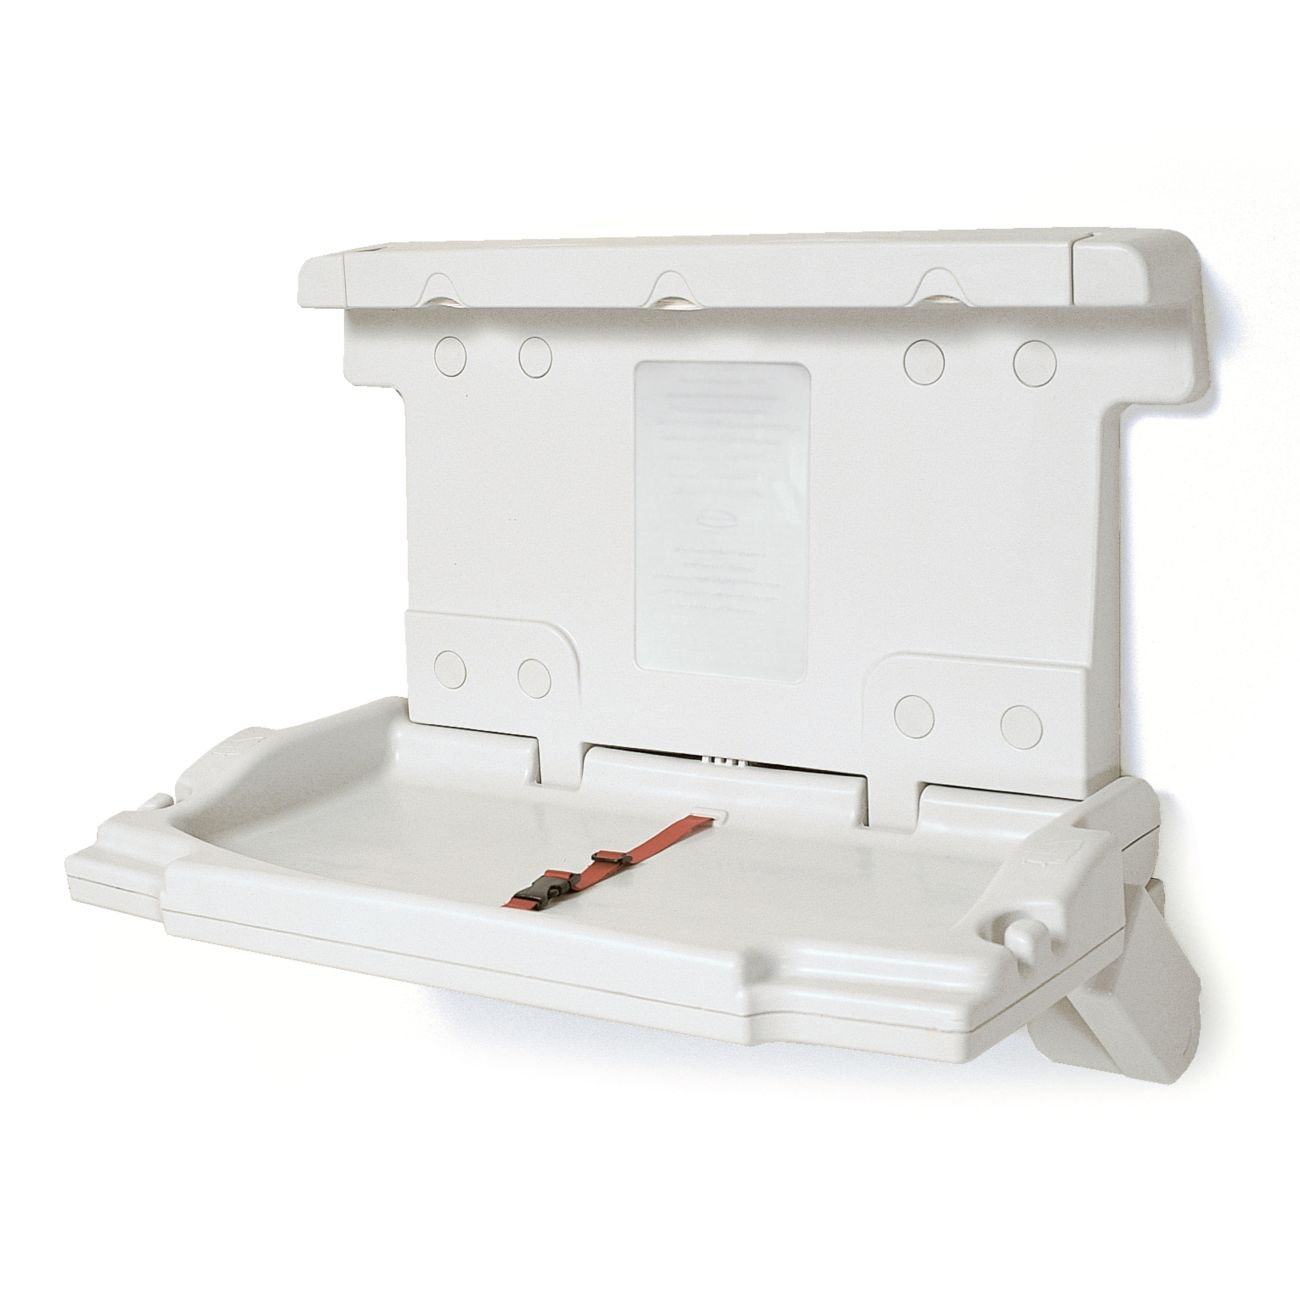 Light Platinum Rubbermaid Commercial Horizontal Baby Changing Station 33.25-Inch Length x 21.5-Inch Width x 4-Inch Height FG781888LPLAT